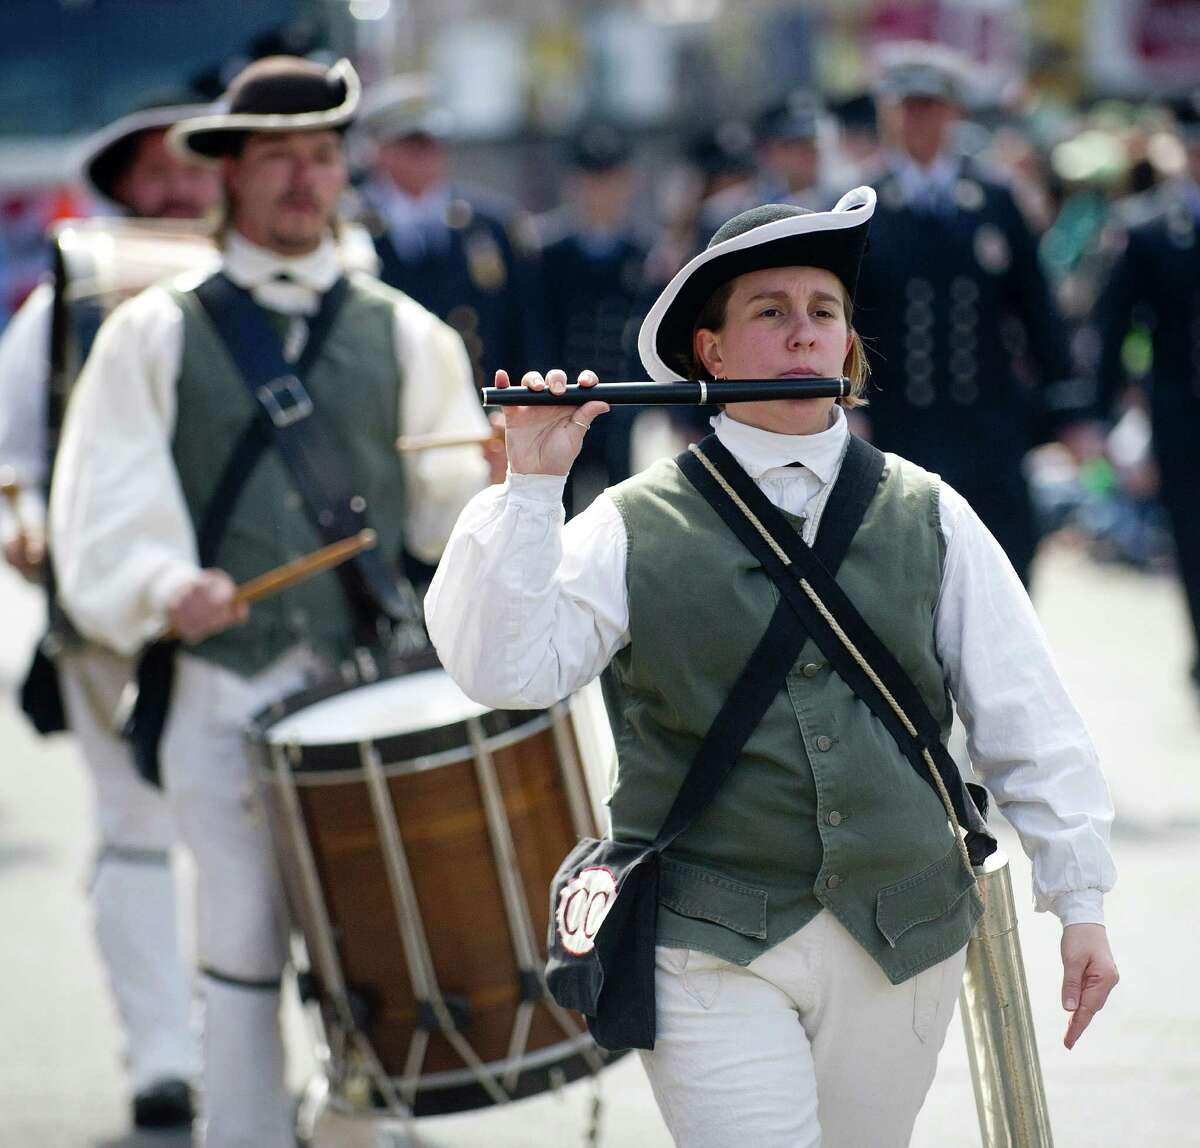 The Colchester Continental Fife and Drum Corps performs during the 19th annual St. Patrick's Day parade in Stamford, Conn., on Saturday, March 8, 2014.